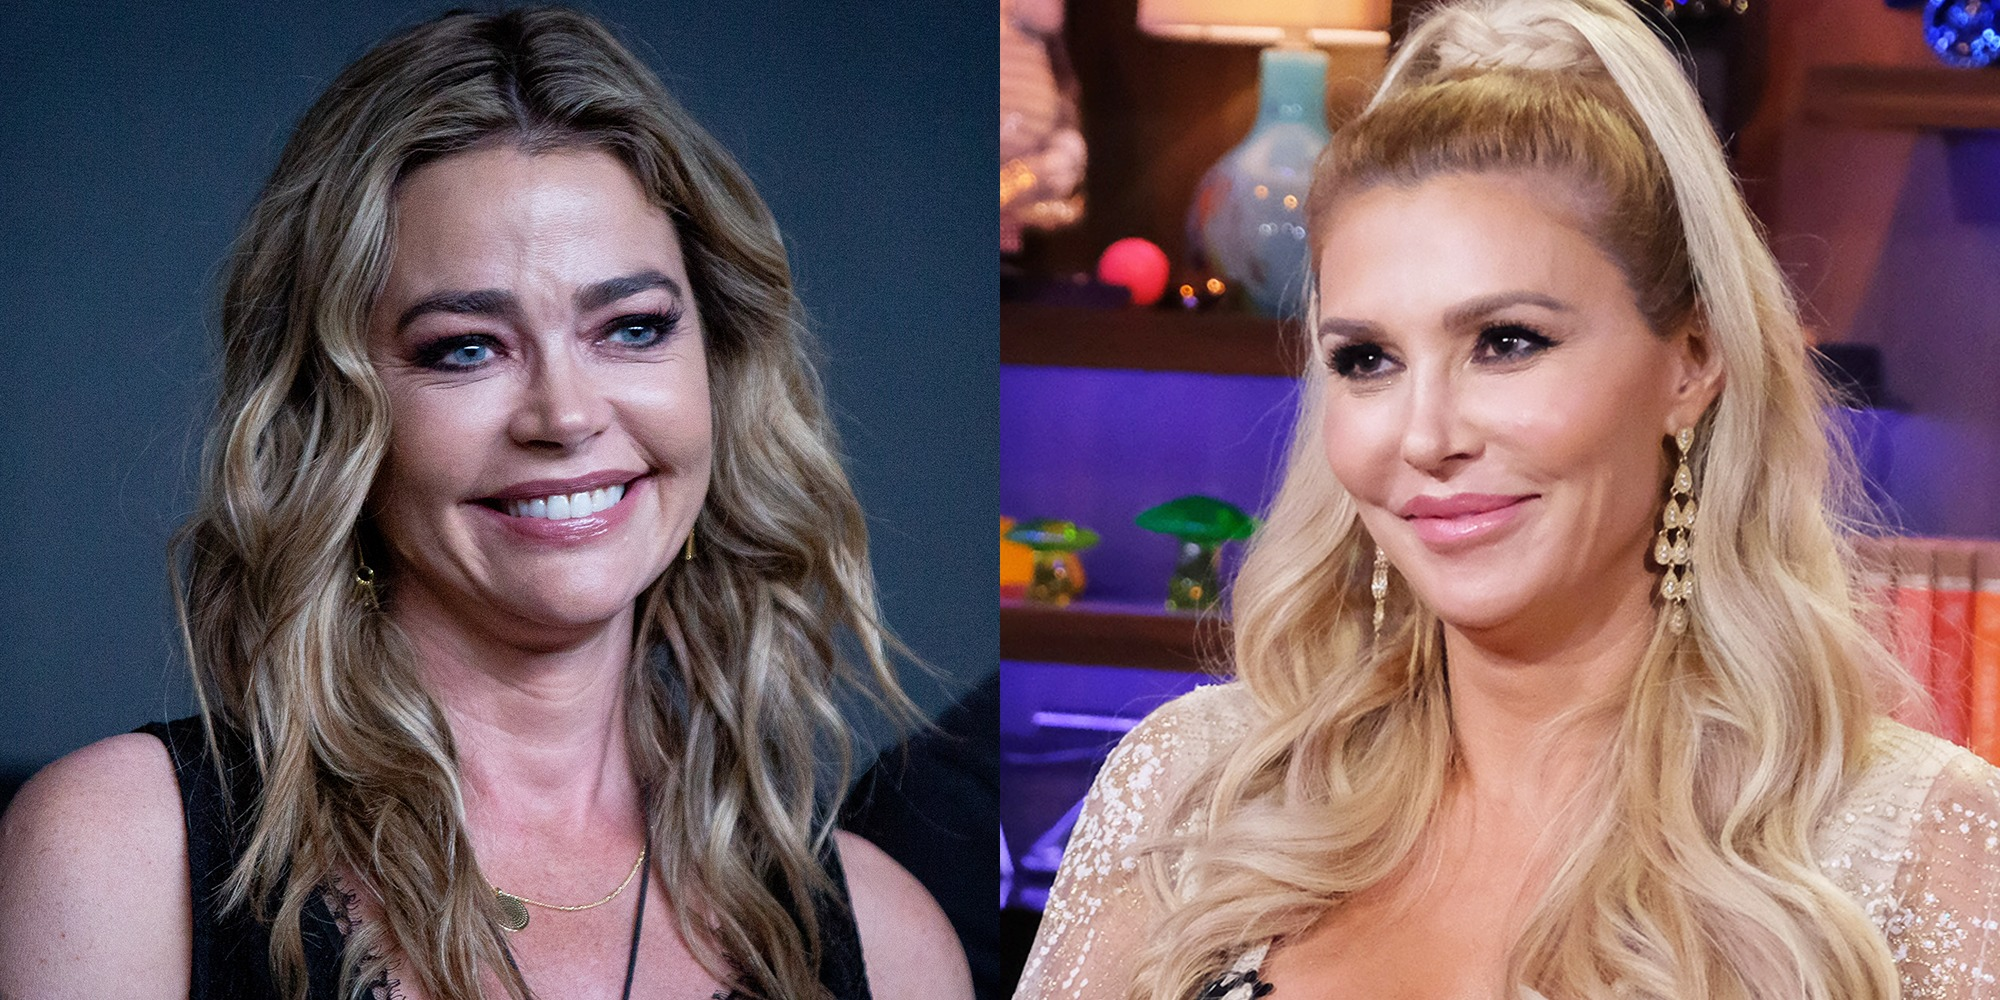 brandi-glanville-posts-pic-of-her-and-denise-richards-kissing-amid-affair-rumors